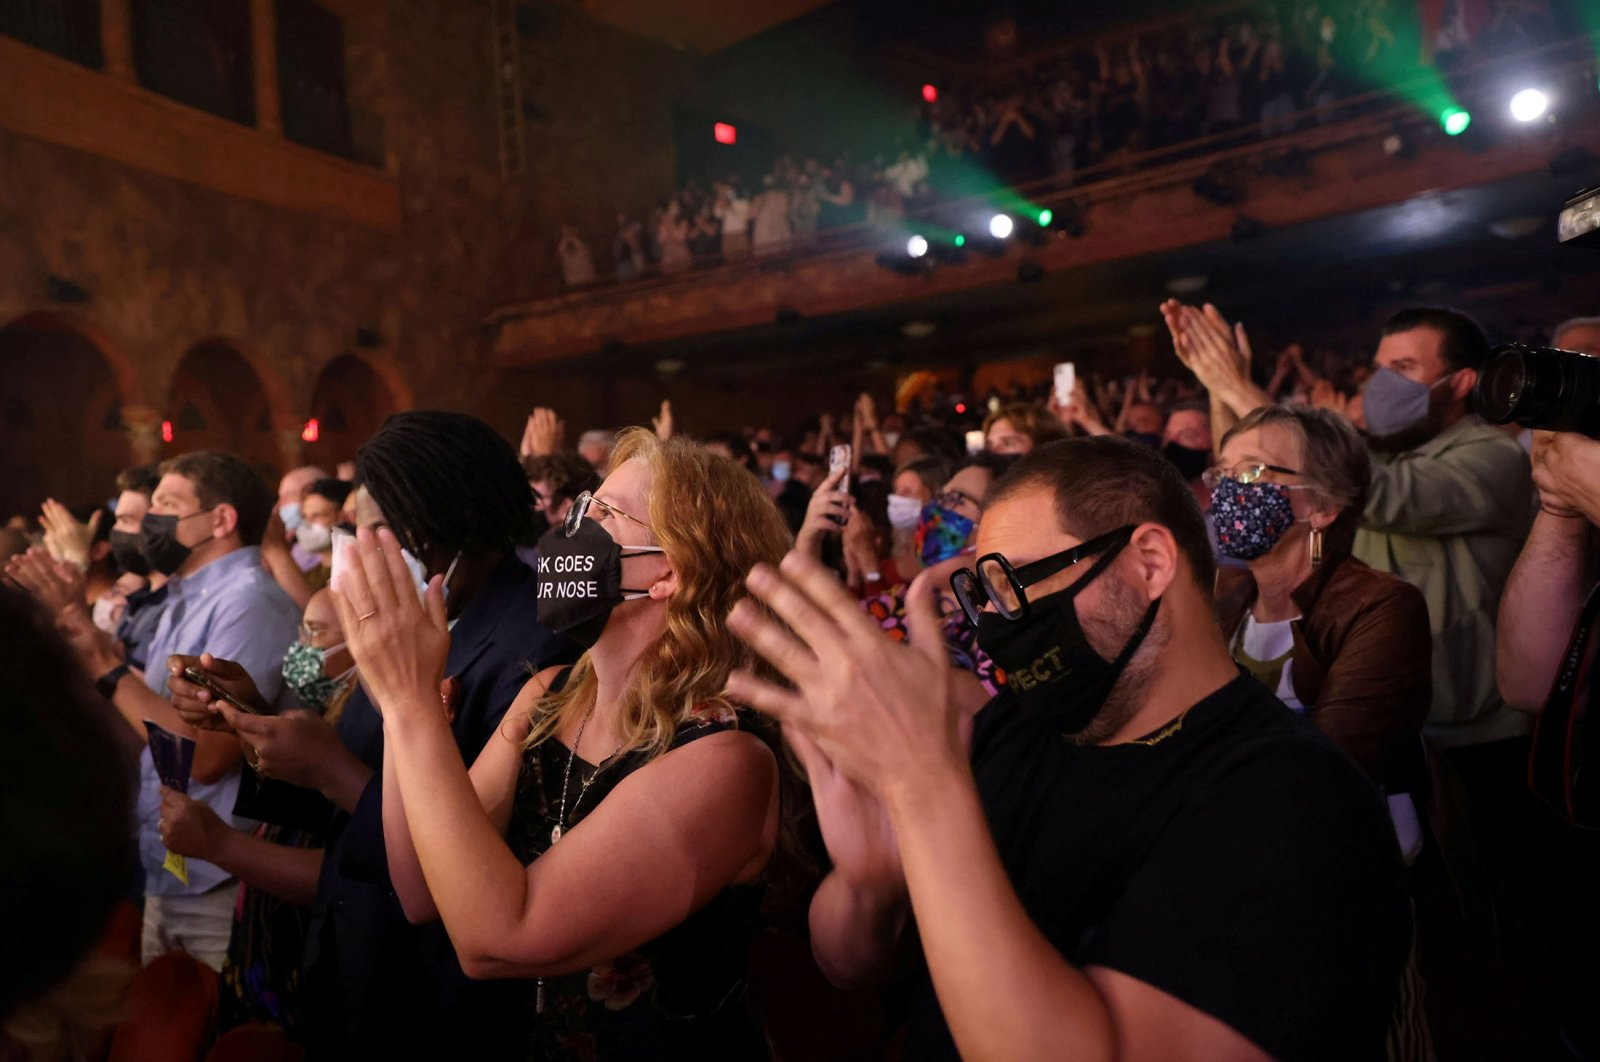 """The audience gives a standing ovation after watching the opening night of previews for """"Pass Over,"""" following the 17-month shutdown of Broadway due to COVID-19, at the August Wilson Theater in New York City, U.S., Aug. 4, 2021. (Reuters Photo)"""